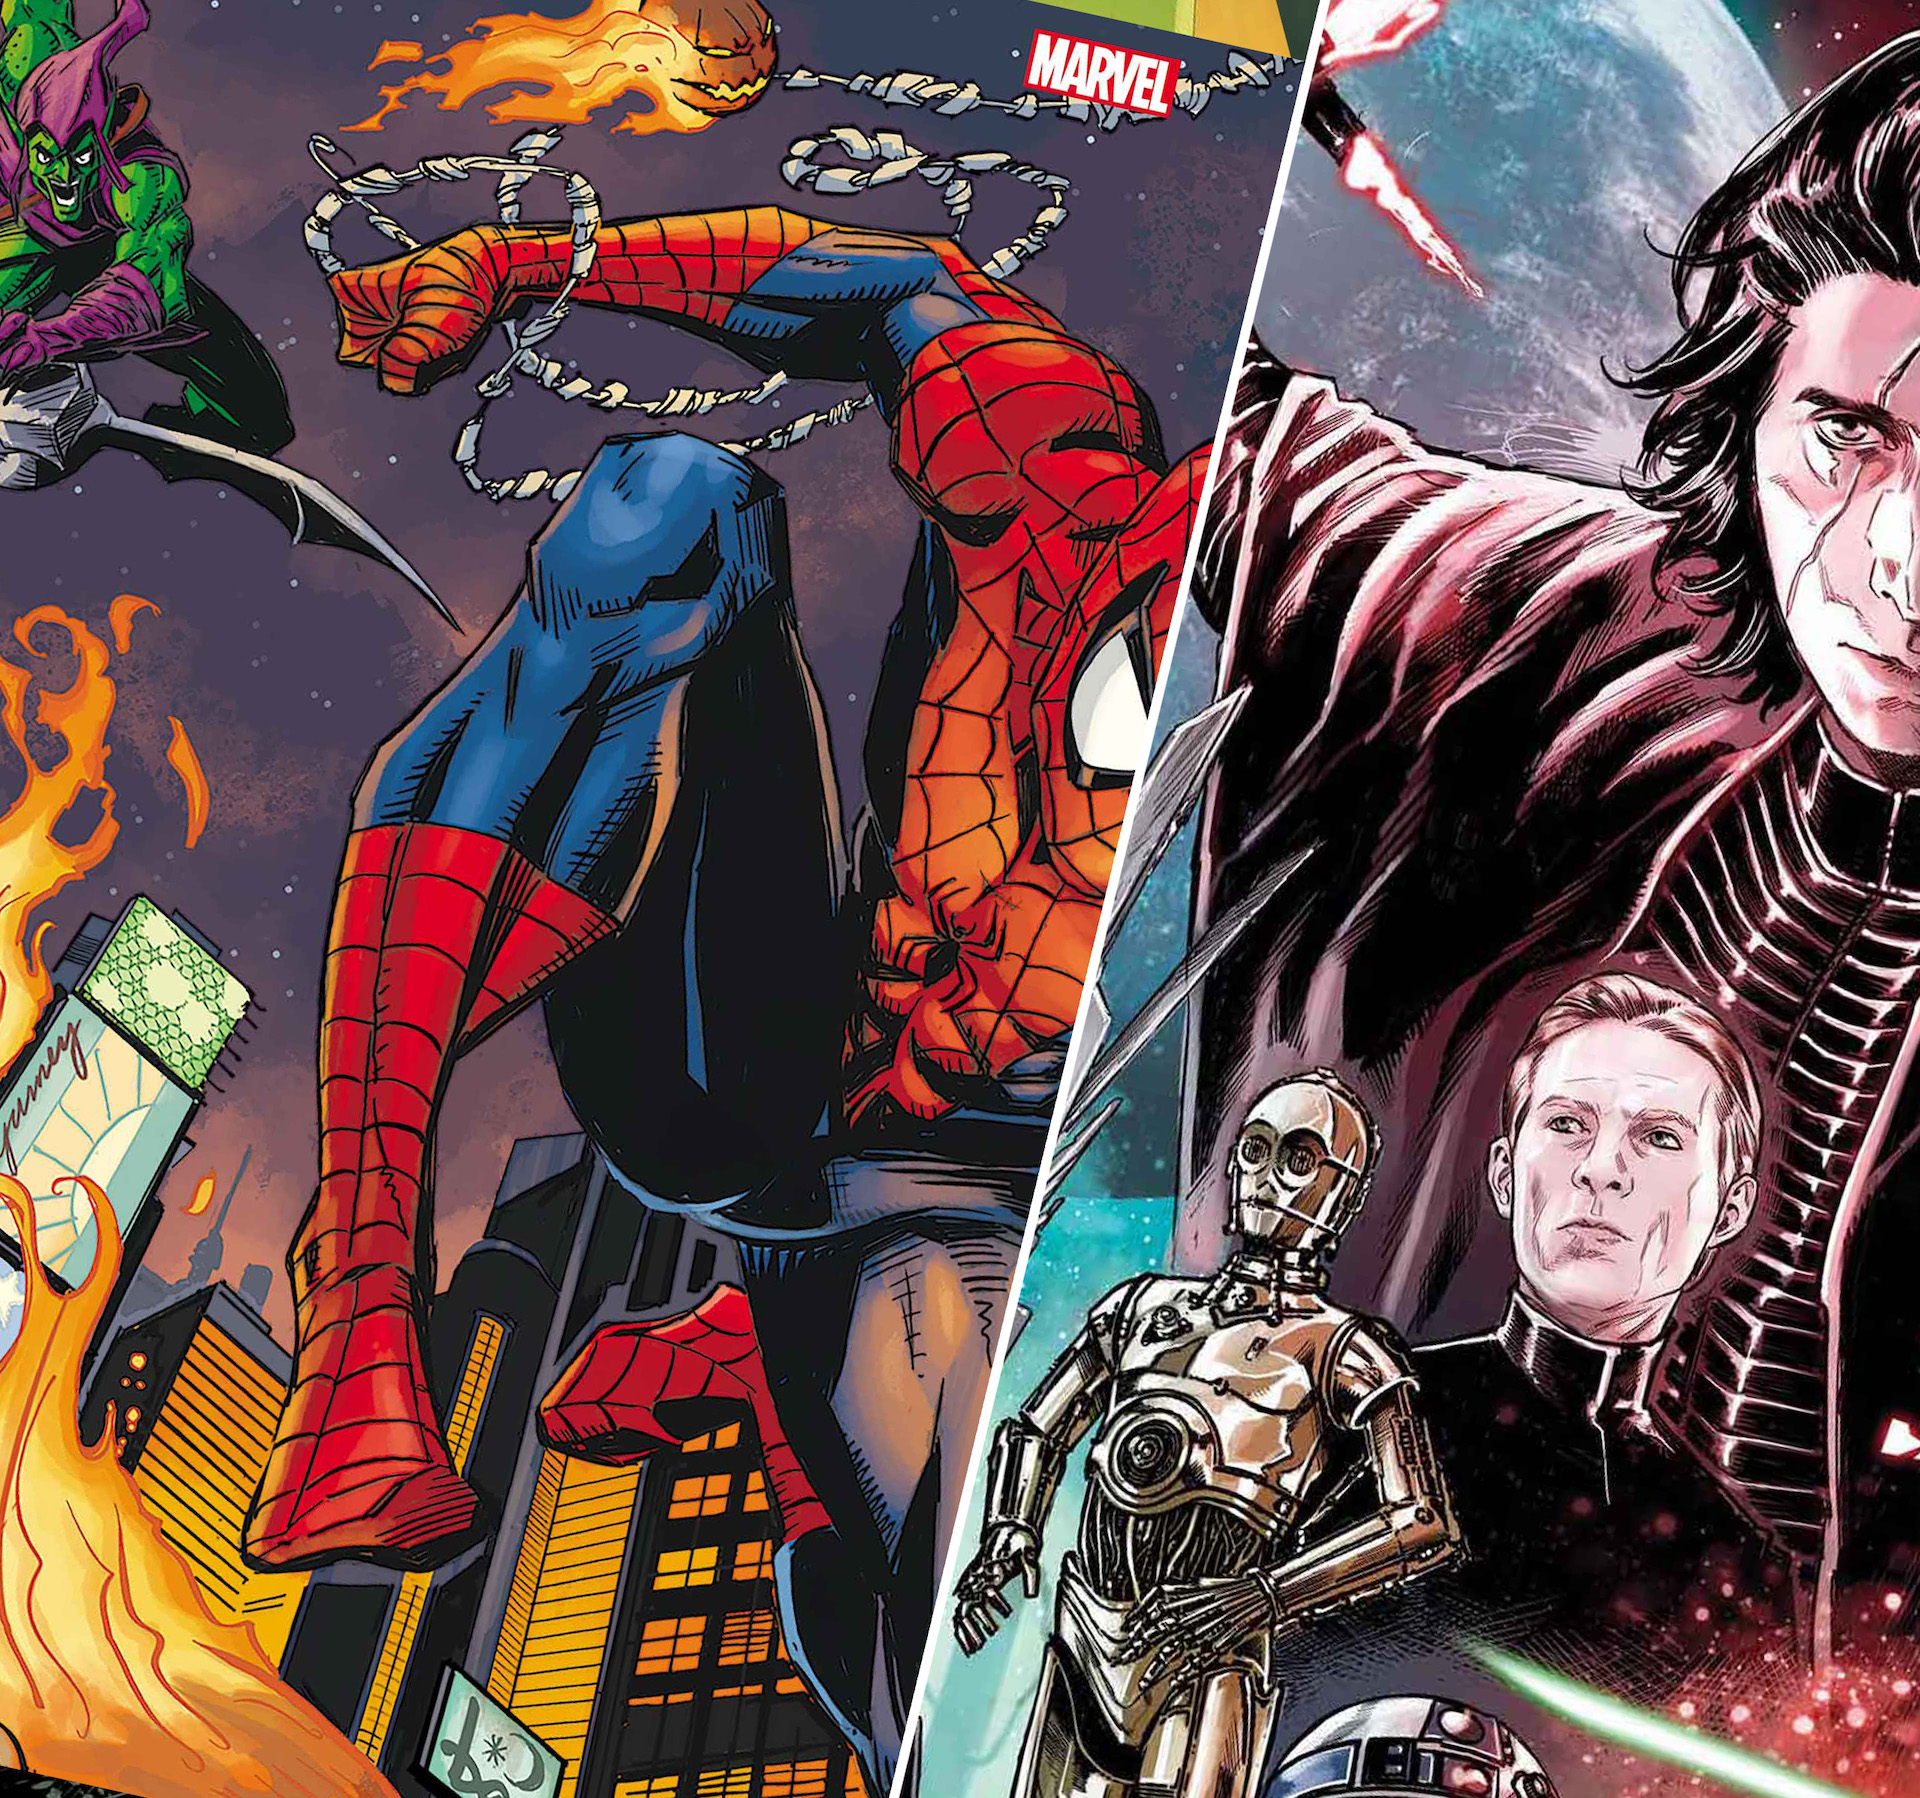 Rise of Skywalker, Doctor Doom, Spidey faces Red Goblin, and more!